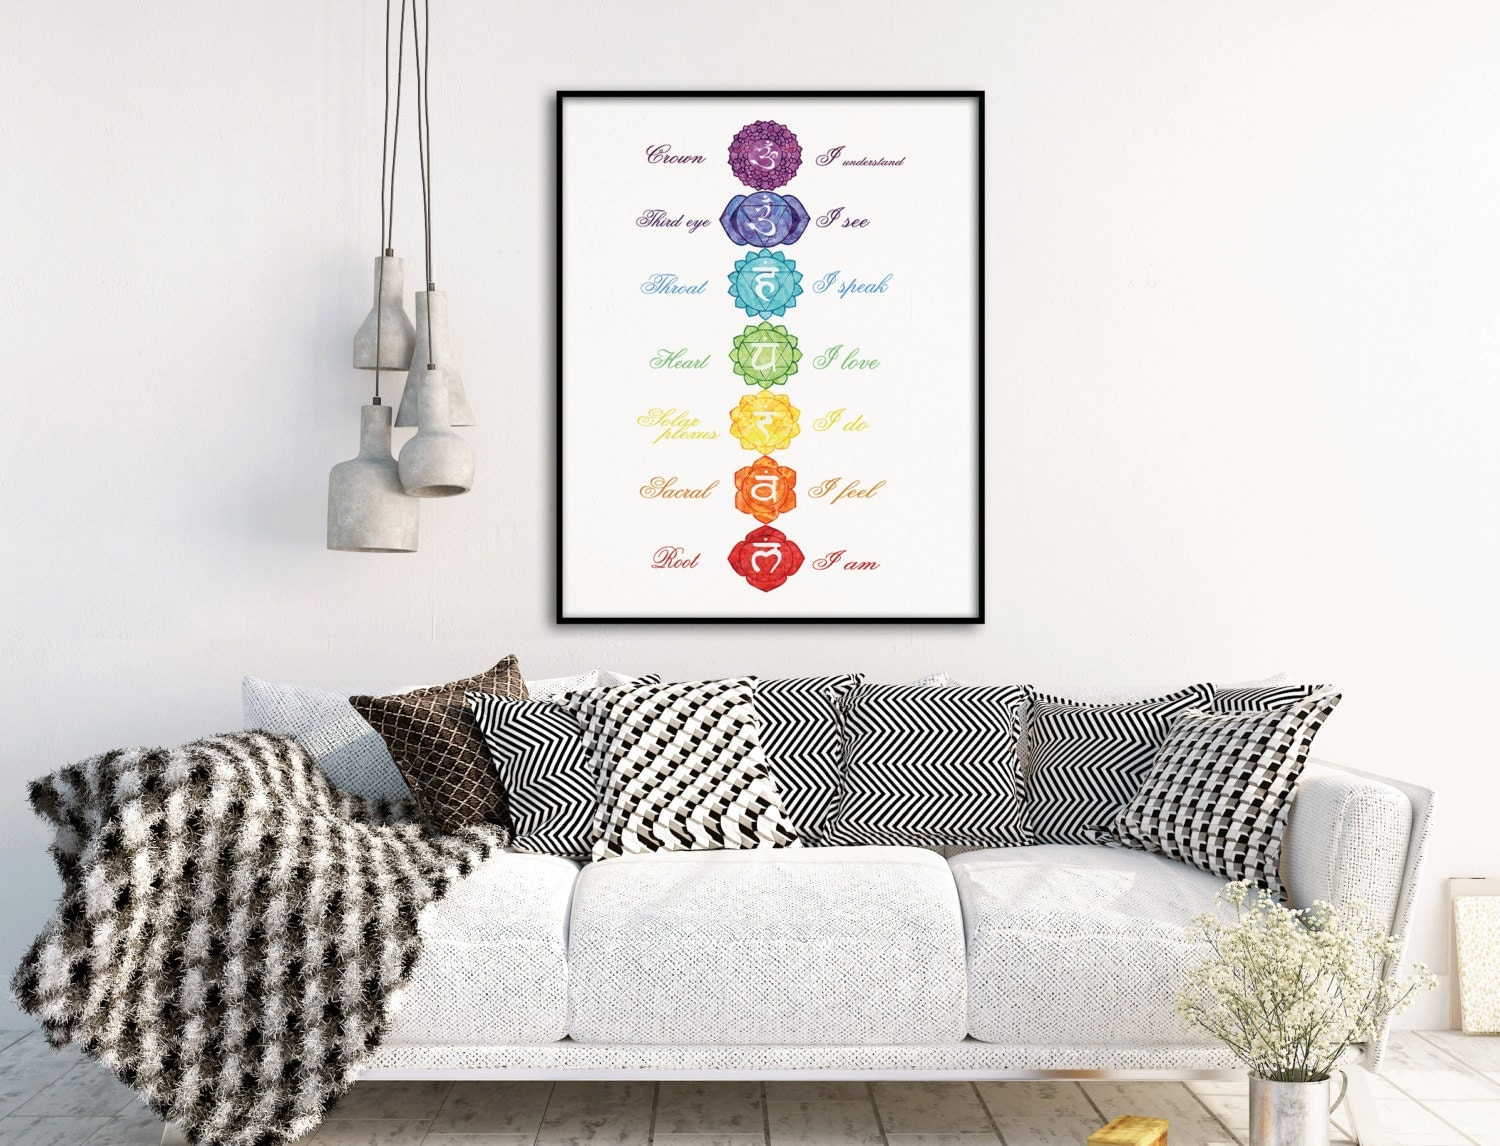 Meditation Decor Fascinating Chakra Meditation Wall Art Chakra Print Yoga Studio Decor 2017